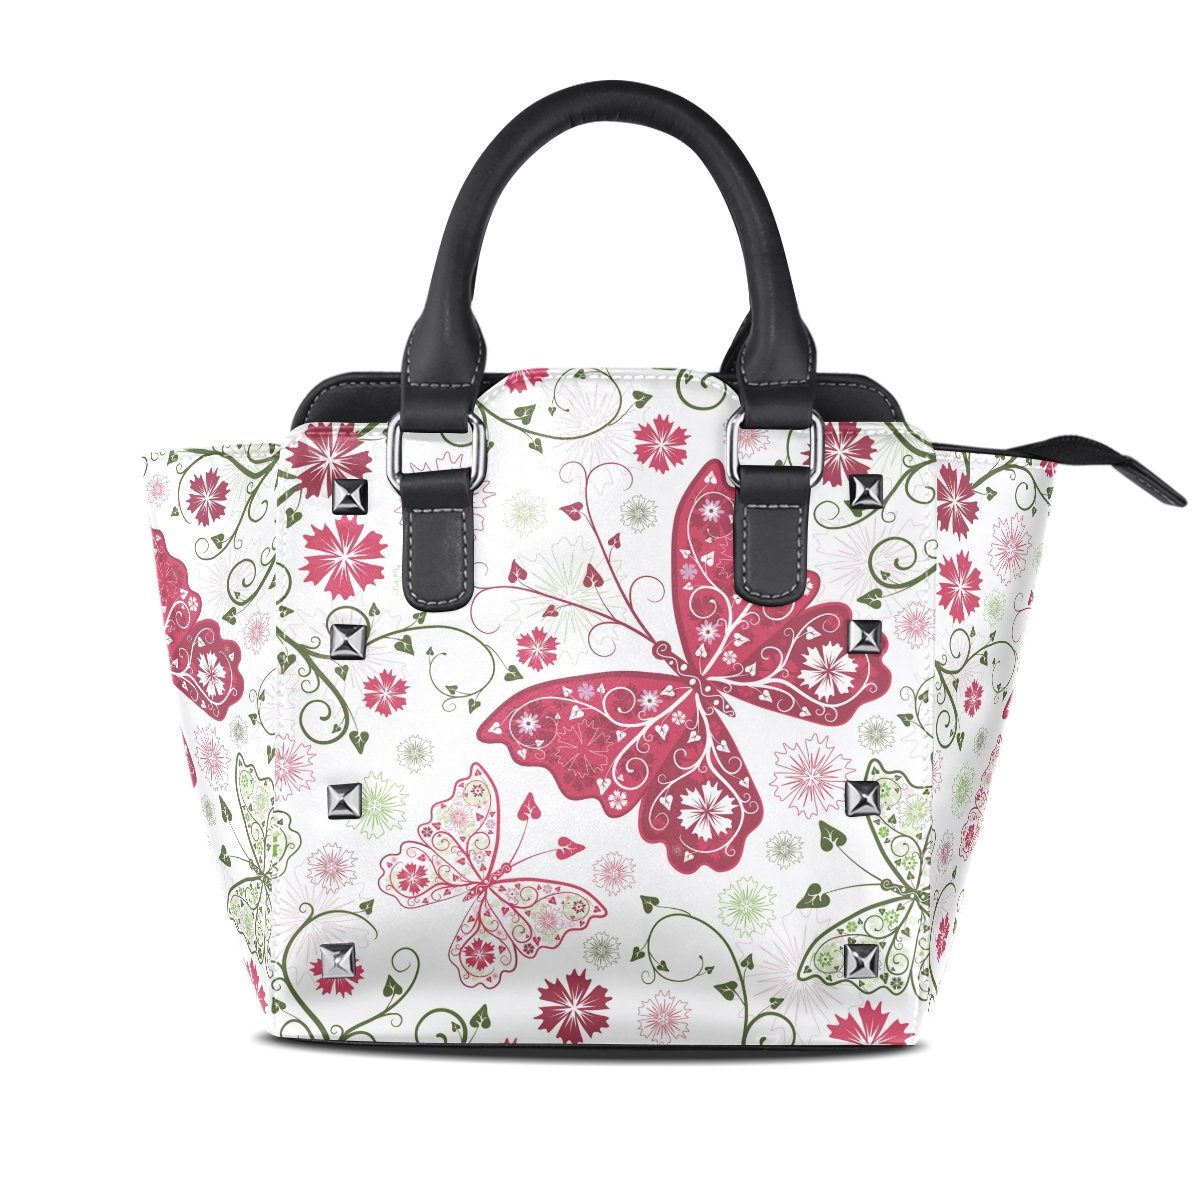 Womens Genuine Leather Hangbags Tote Bags Butterflies Purse Shoulder Bags